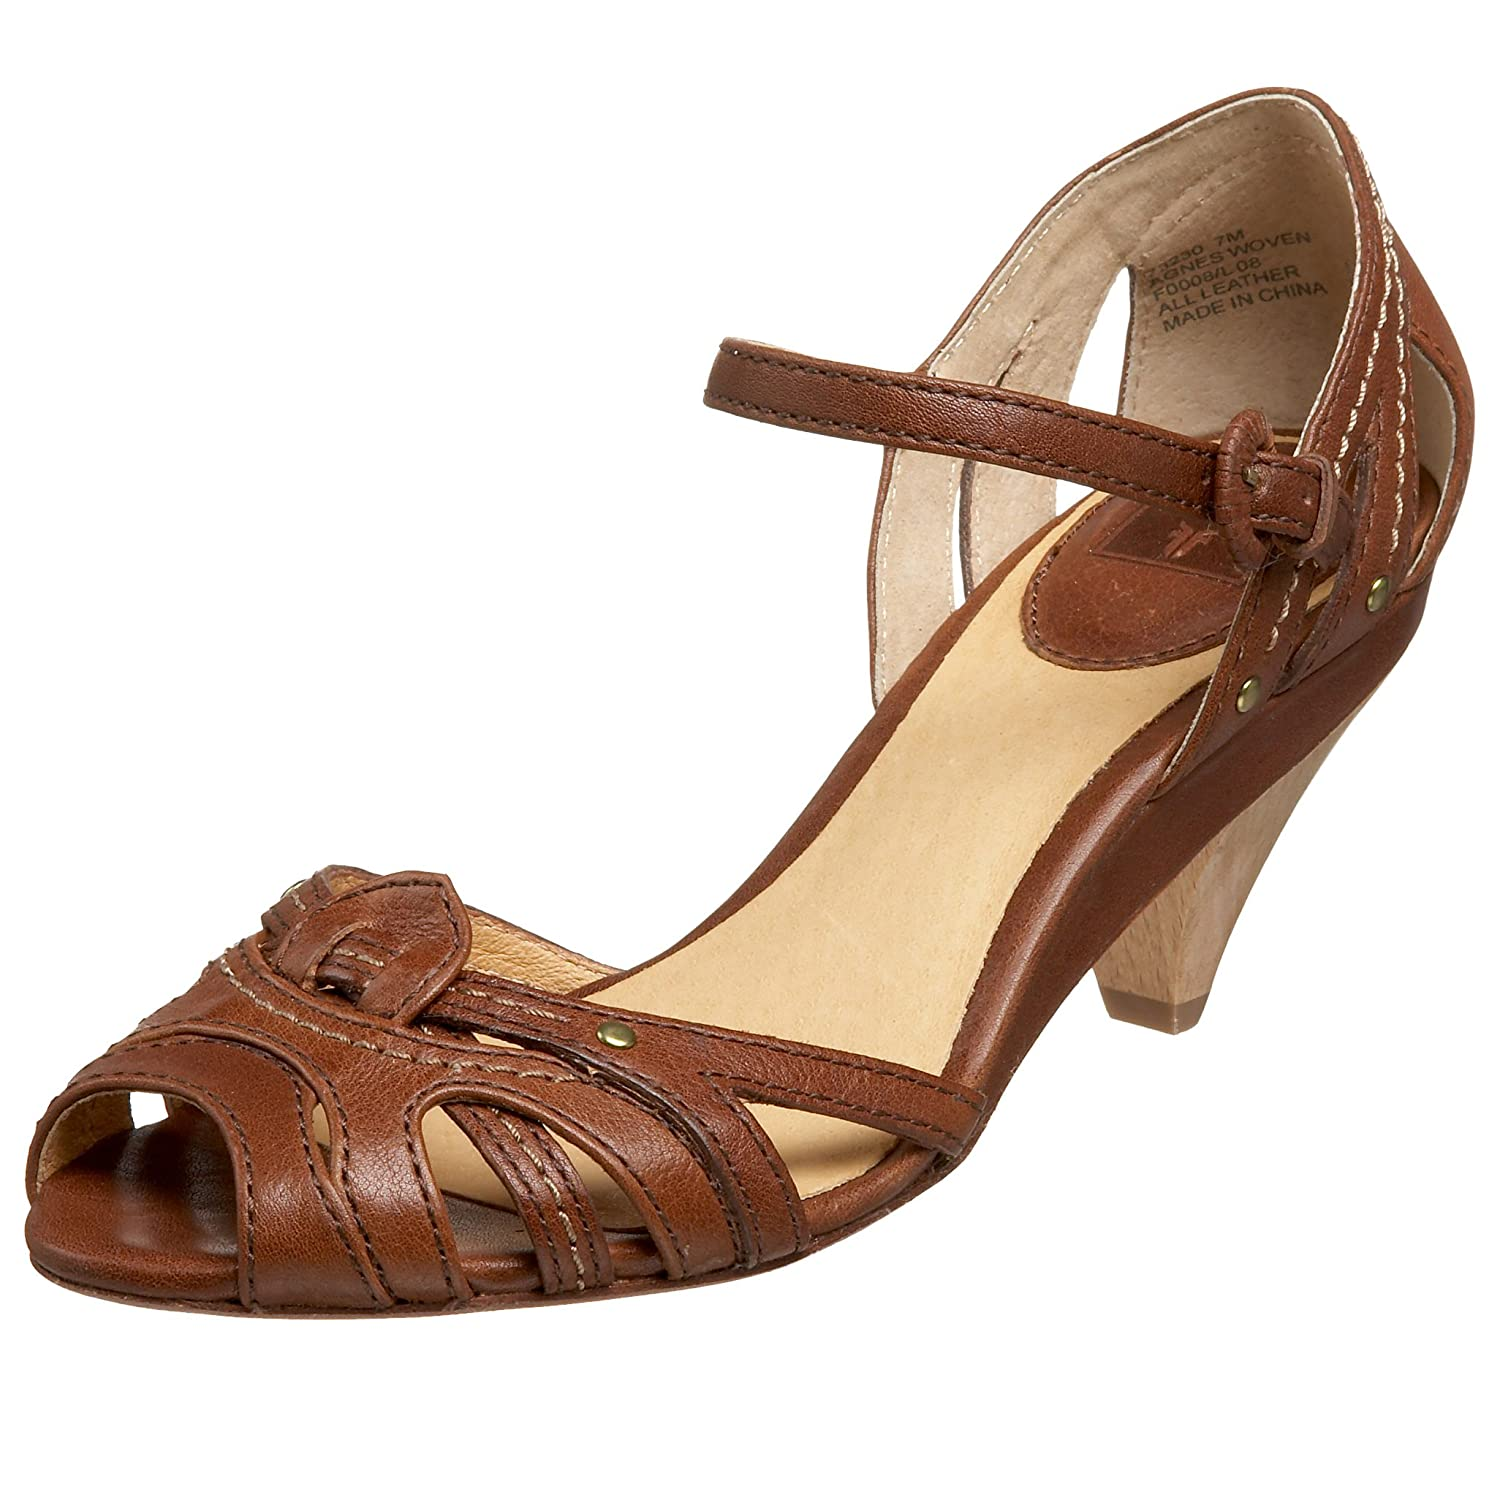 FRYE Women's Agnes Ankle Strap Heel - Free Overnight Shipping & Return Shipping: Endless.com from endless.com